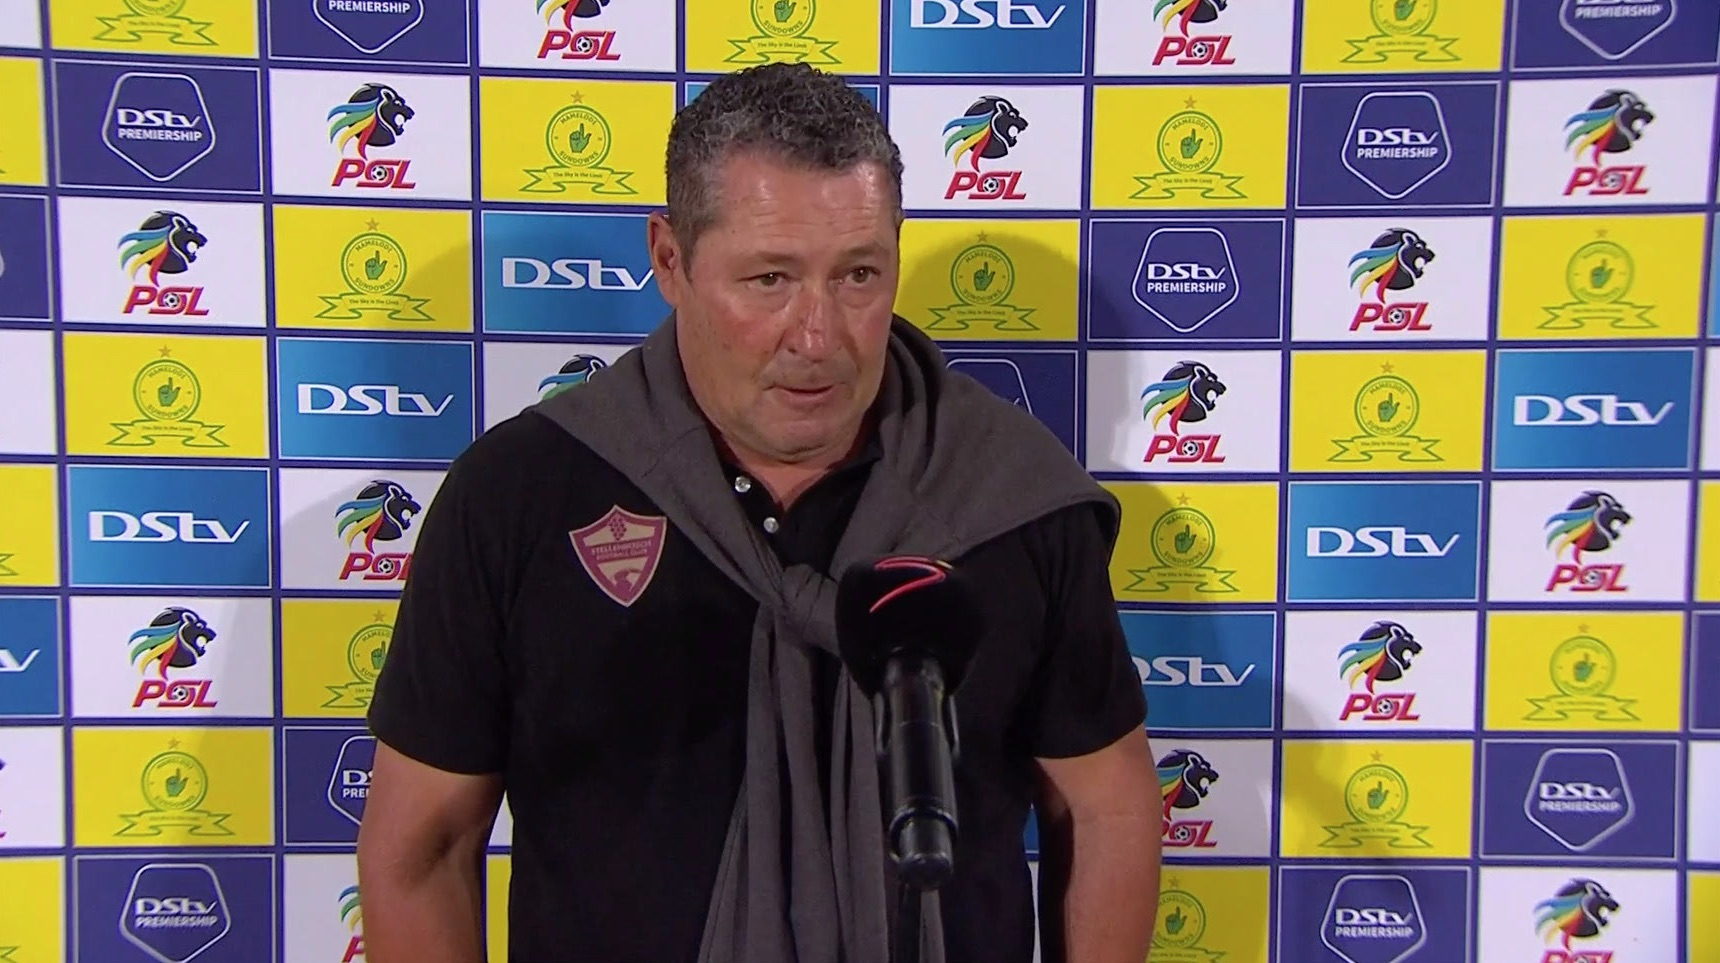 DStv Premiership | Mamelodi Sundowns v Stellenbosch FC  | Interview with Steve Barker